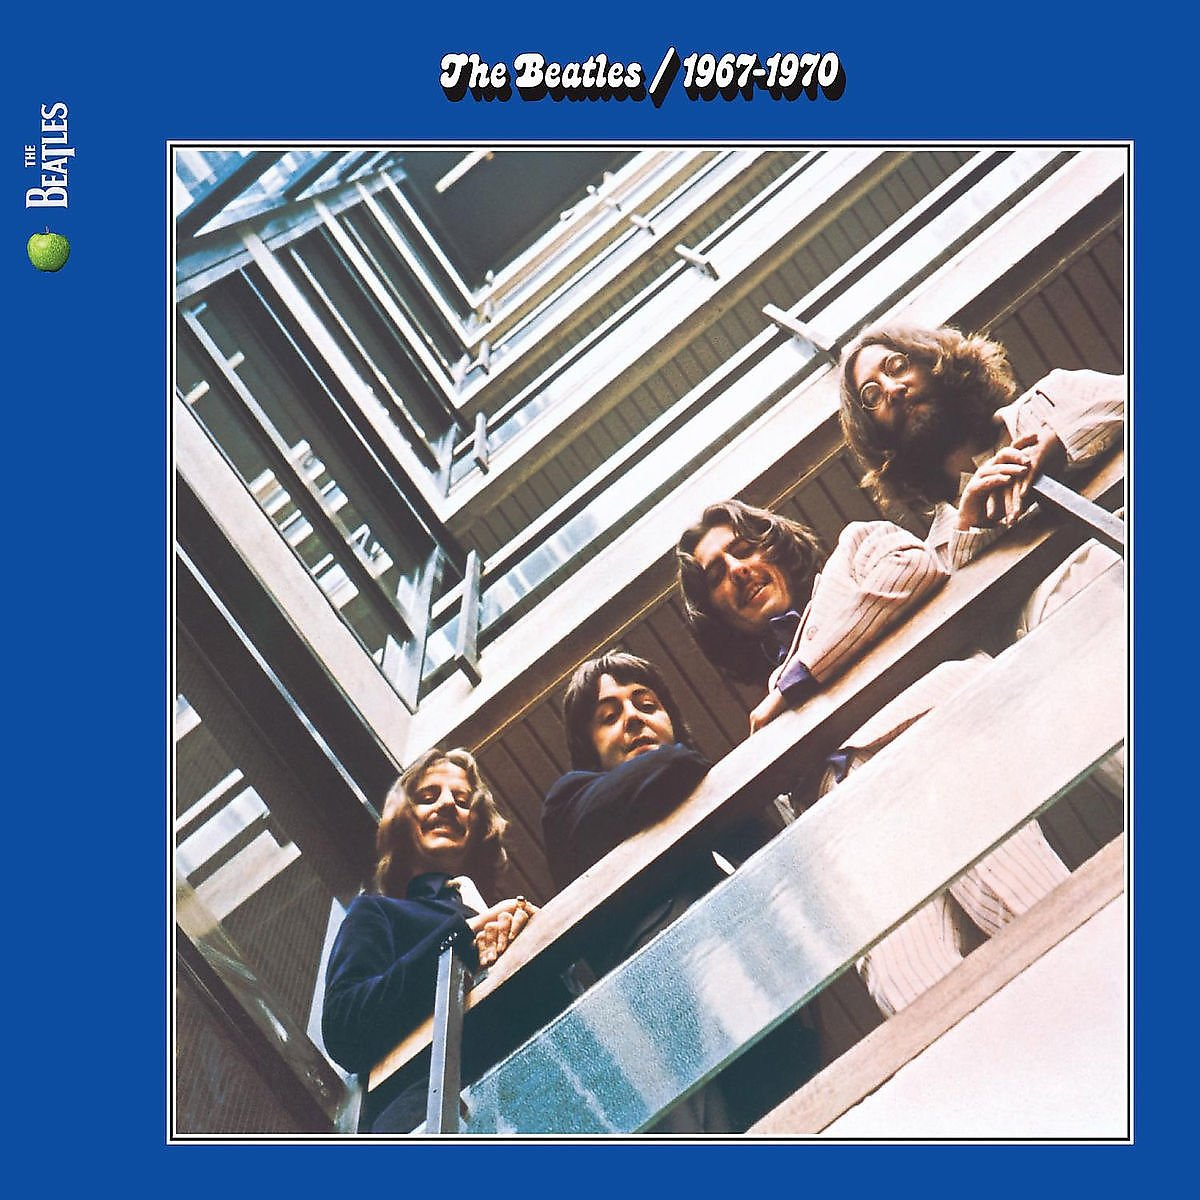 The Beatles - The Beatles: 1967-1970 - Amazon.com Music